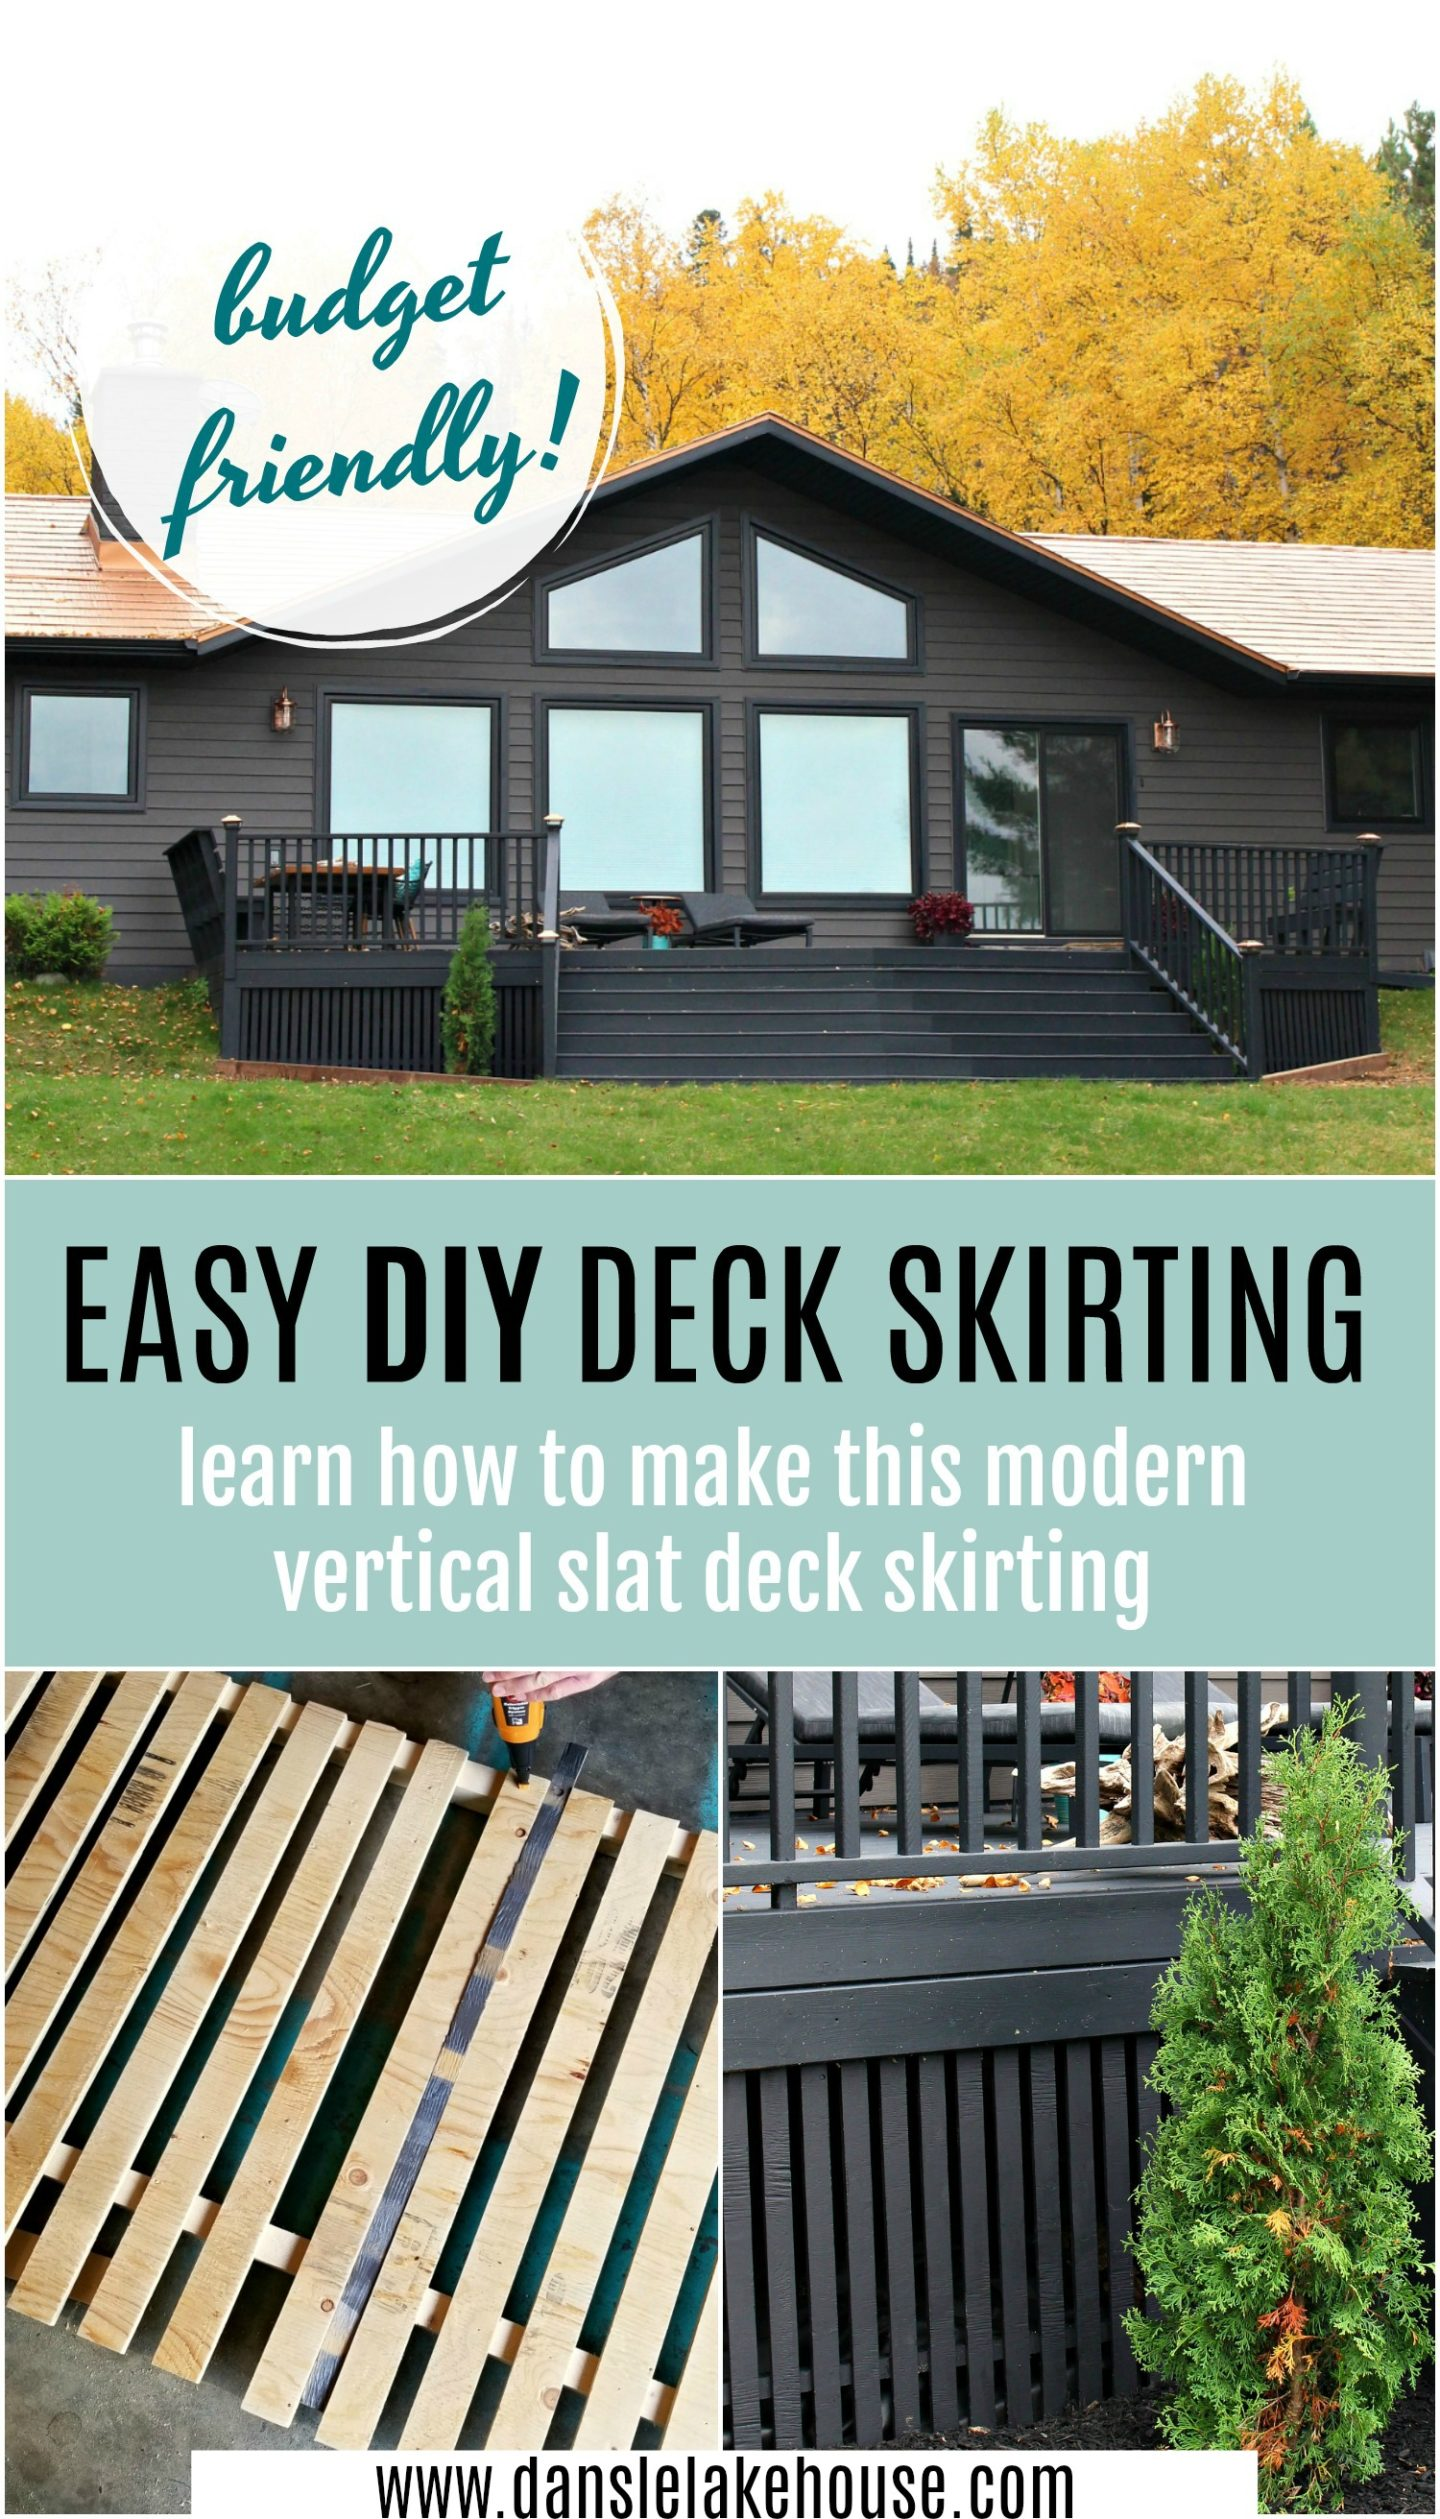 Easy DIY Deck Skirting Tutorial. Learn How to Make Modern Vertical Slat Deck Skirting